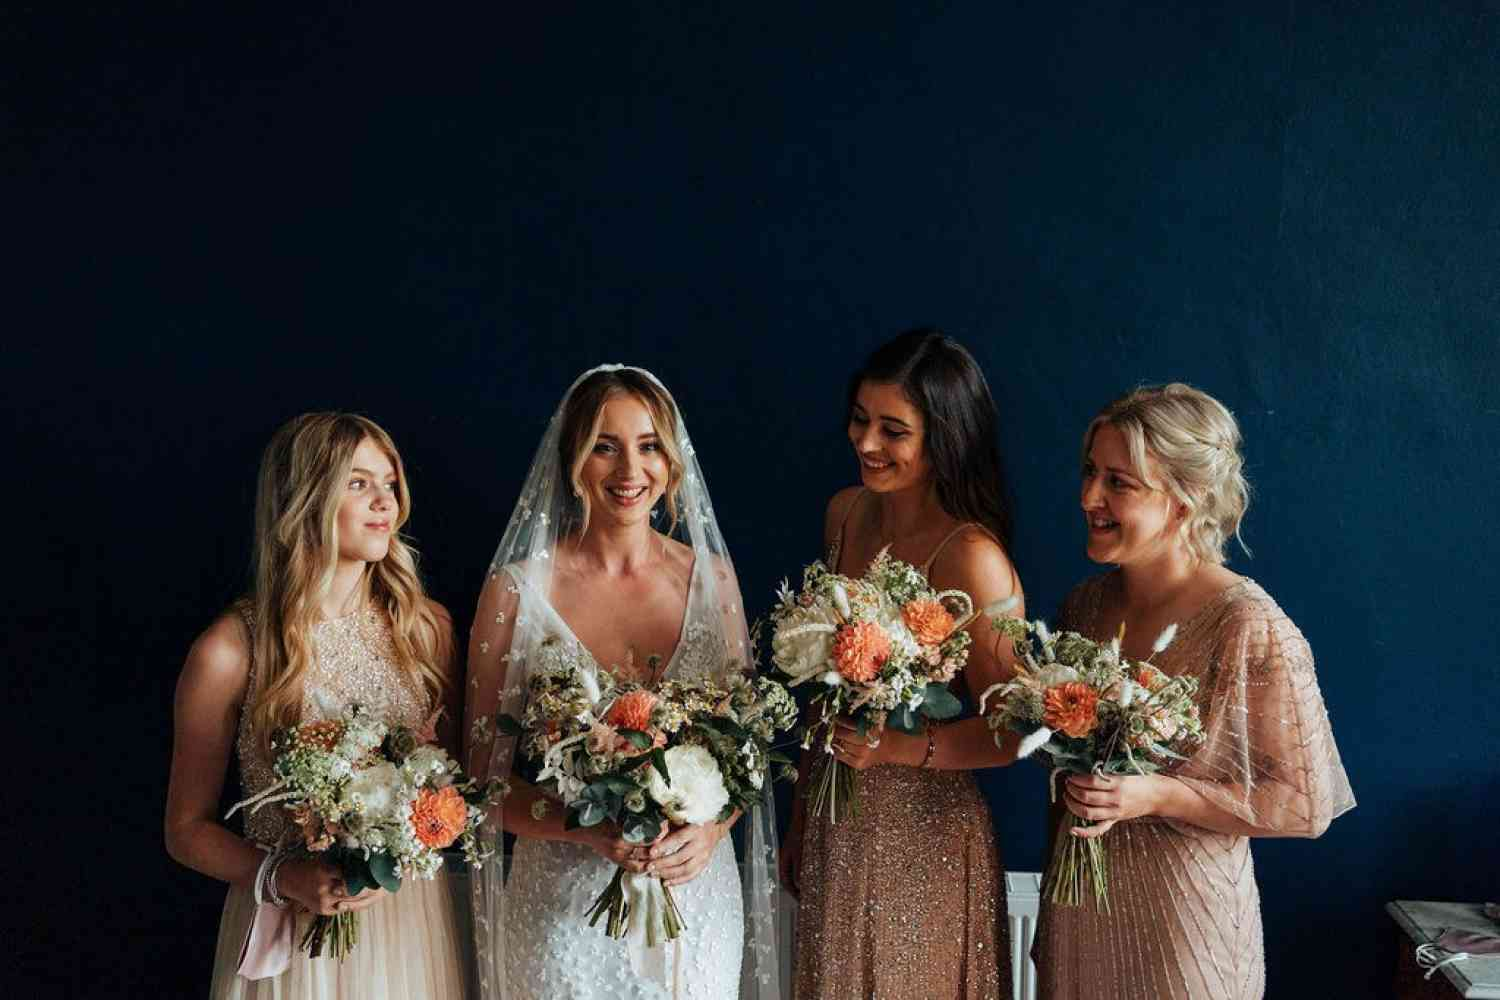 Wild summer bridal and bridesmaids bouquets